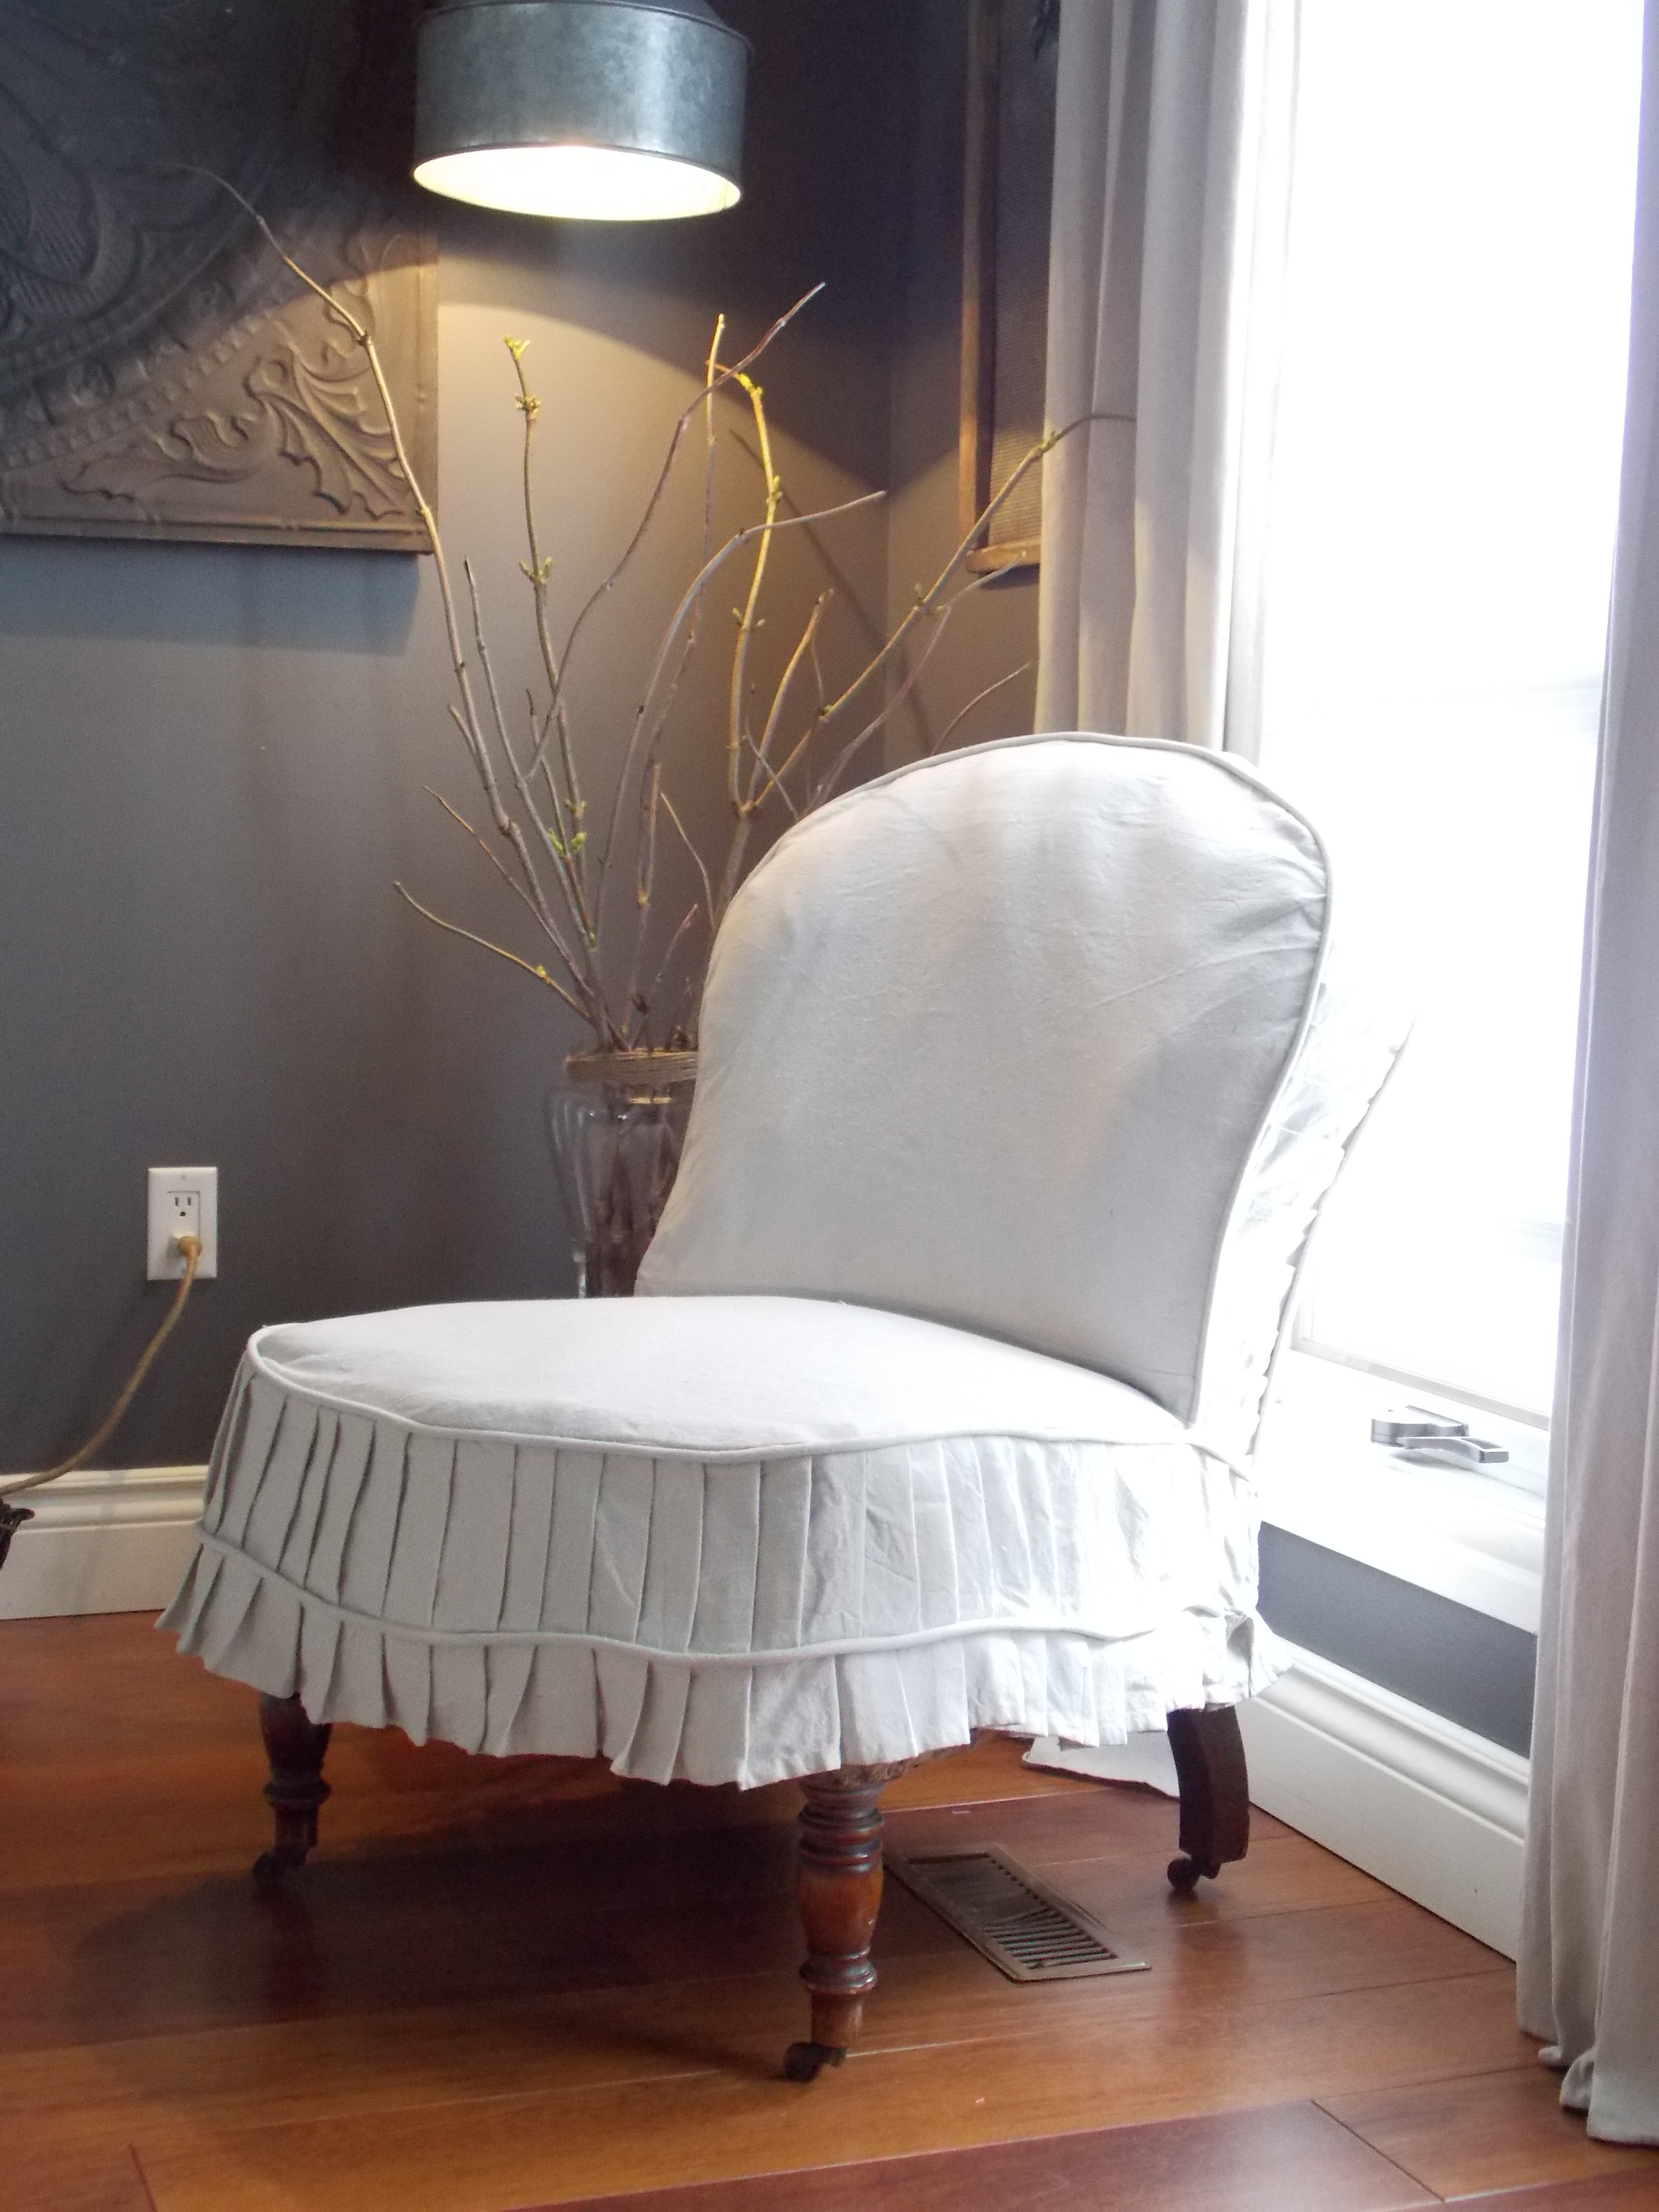 Slpi covered antique chair,desk redo, spring buds 183